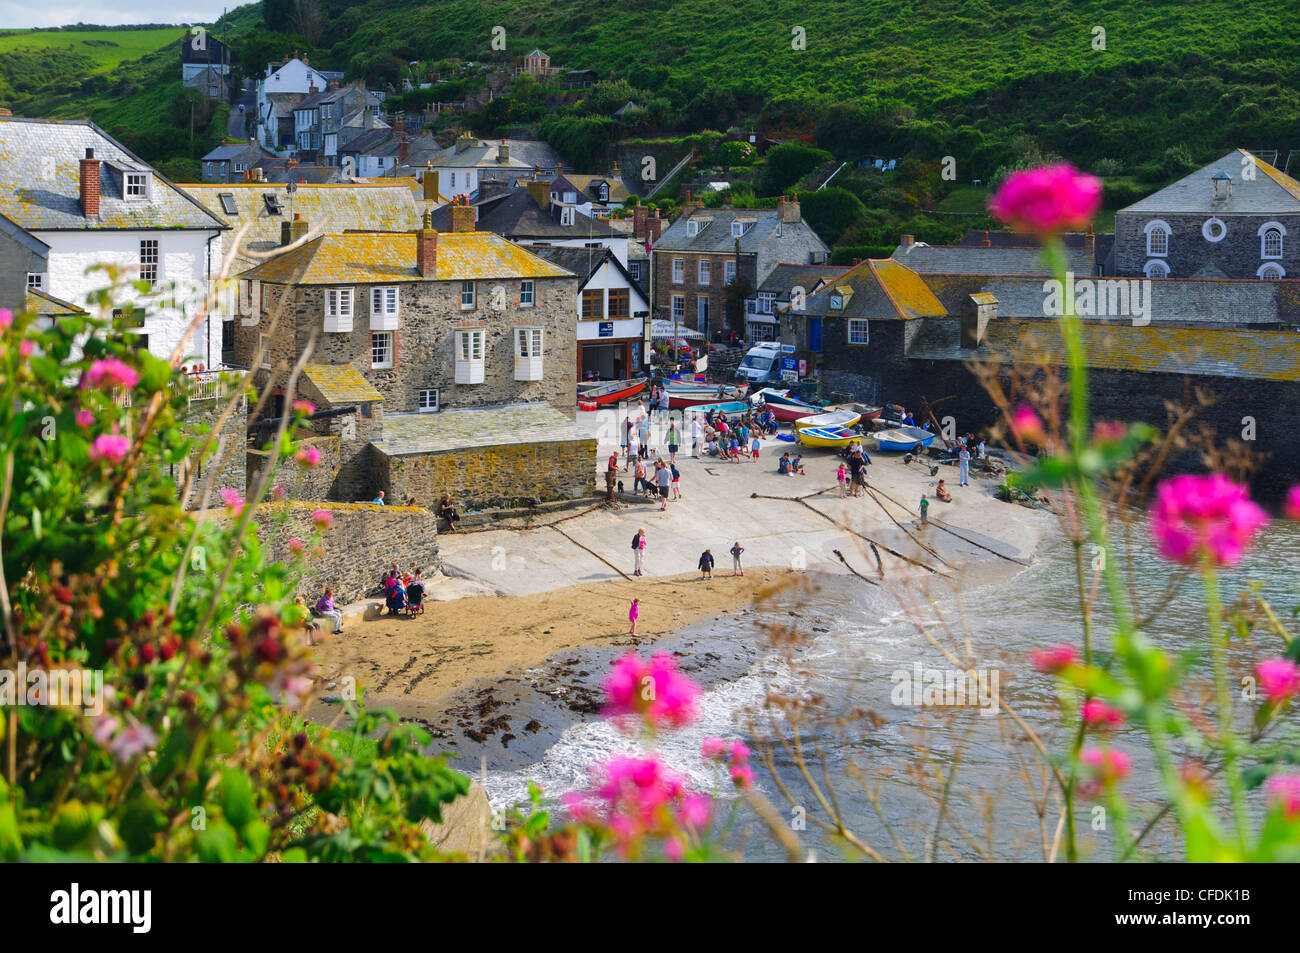 Port Isaac, Cornwall, England, United Kingdom, Europe - Stock Image